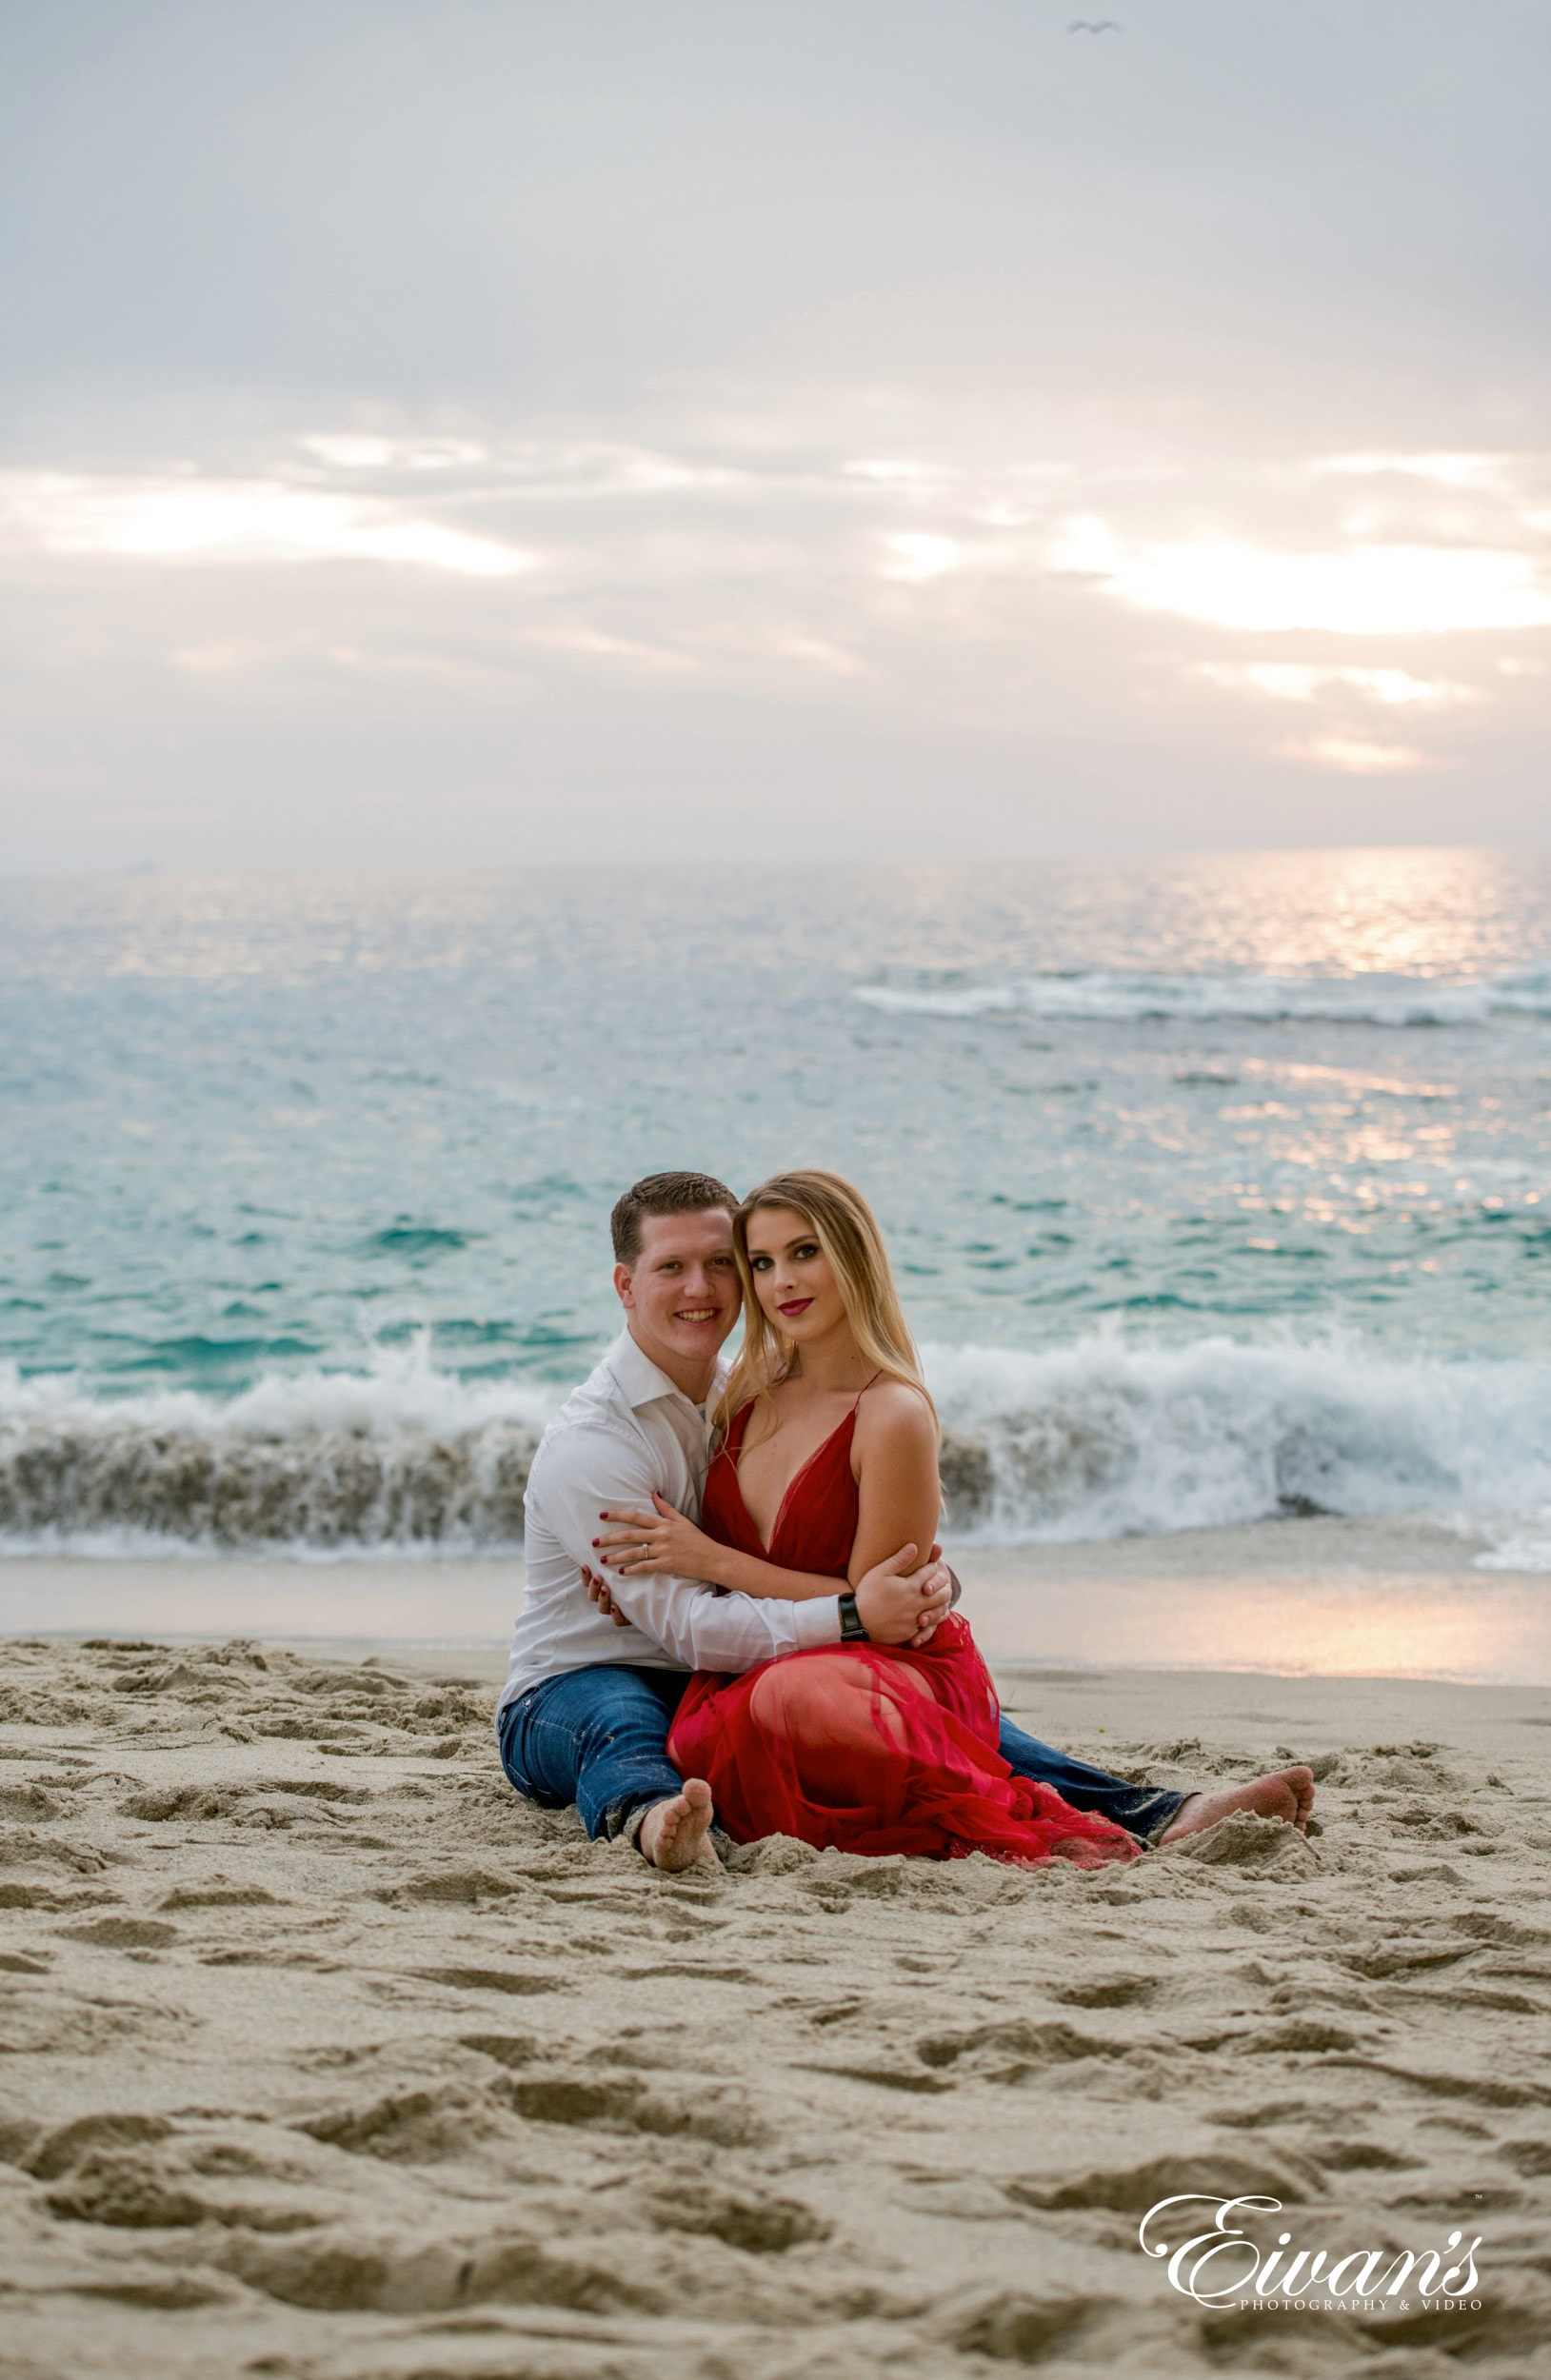 man and woman sitting on beach shore during daytime